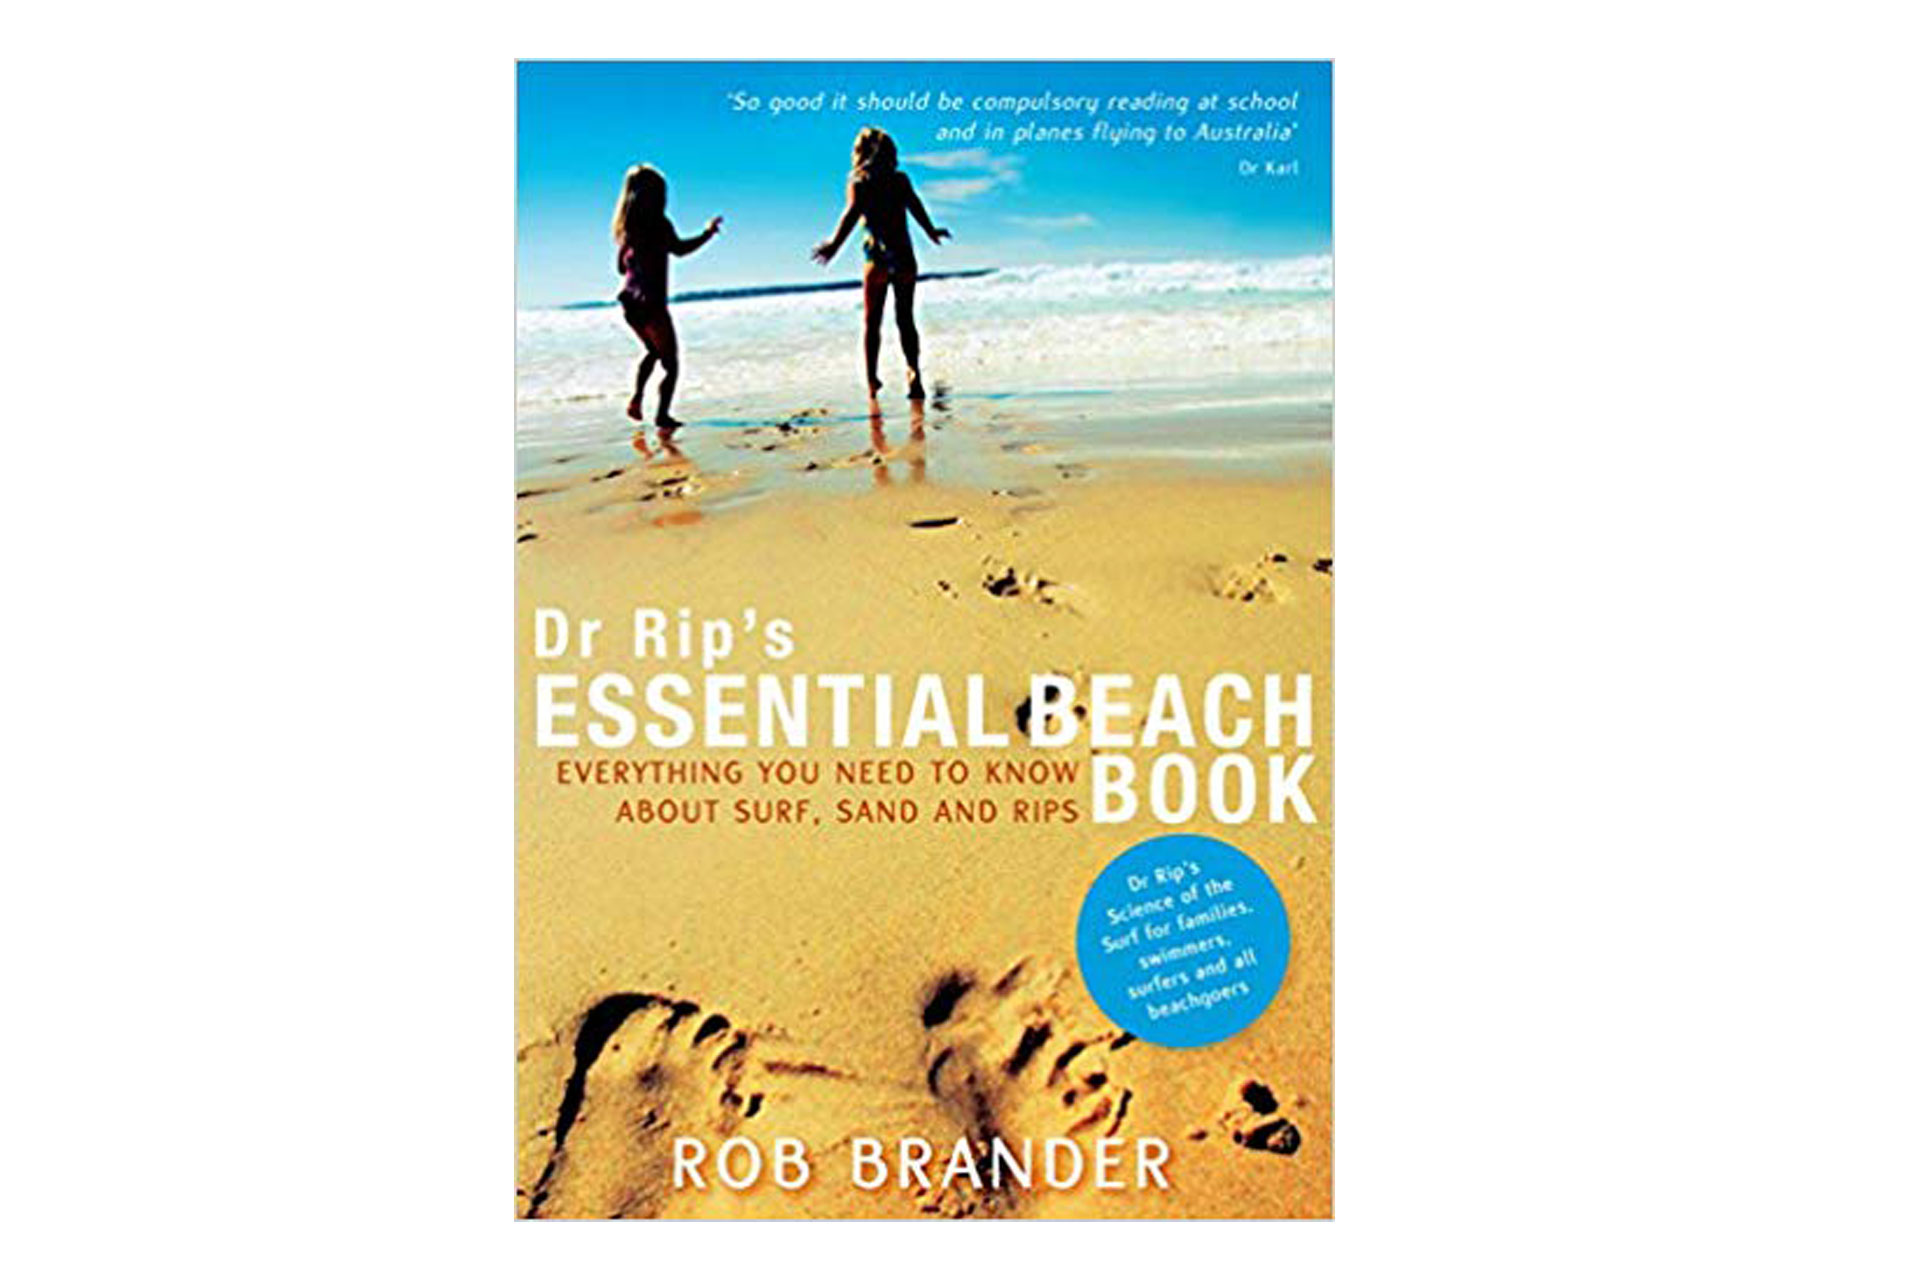 Dr. Rip's Essential Beach Book; Courtesy of Amazon